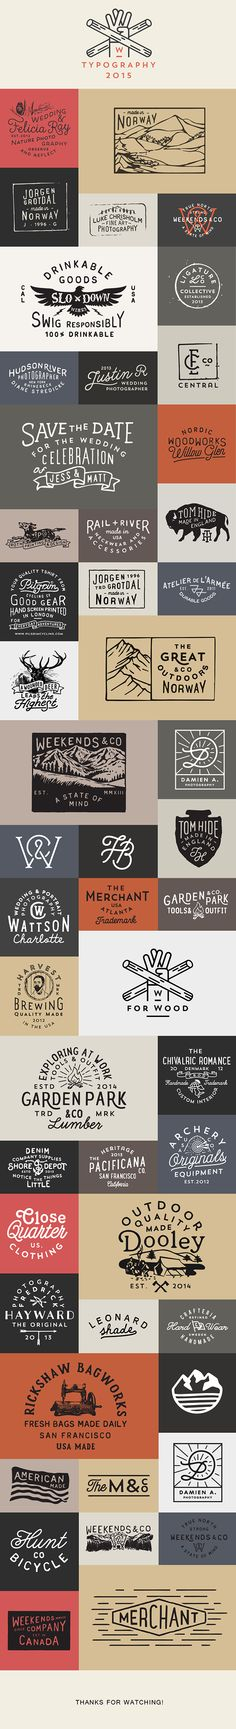 These are some good example of rustic/masculine fonts and logos to refer to. Reference: Logos & Typography 2015 on Behance Packaging Inspiration, Inspiration Logo Design, Webdesign Inspiration, Typography Inspiration, Design Ideas, Design Web, Type Design, Typo Logo, Logo Branding